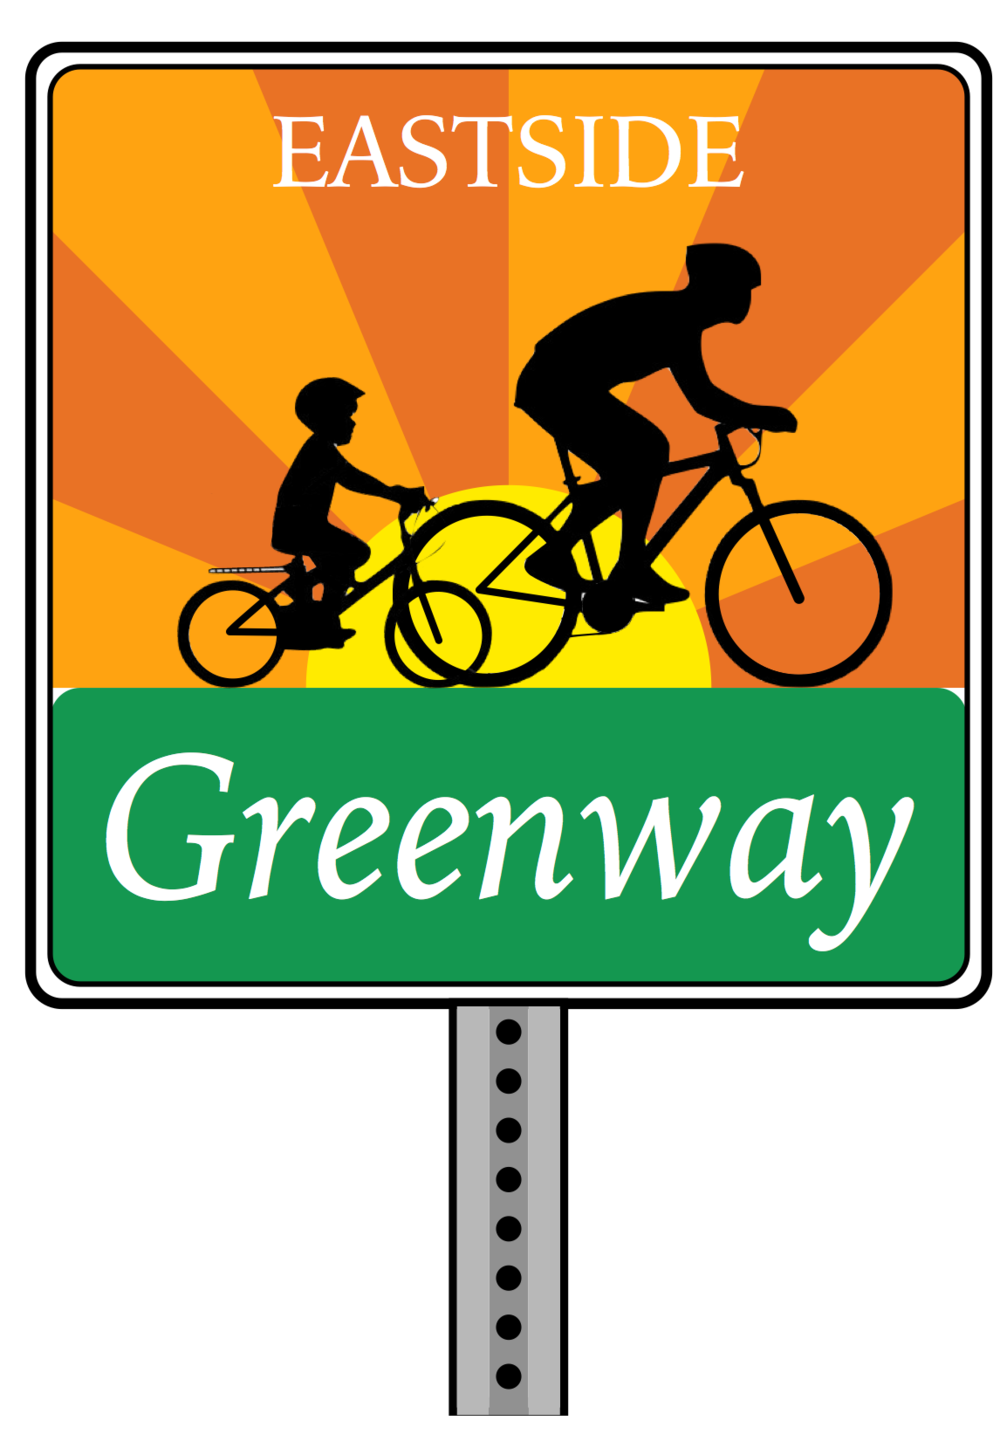 Concept of branding along the Greenway route.